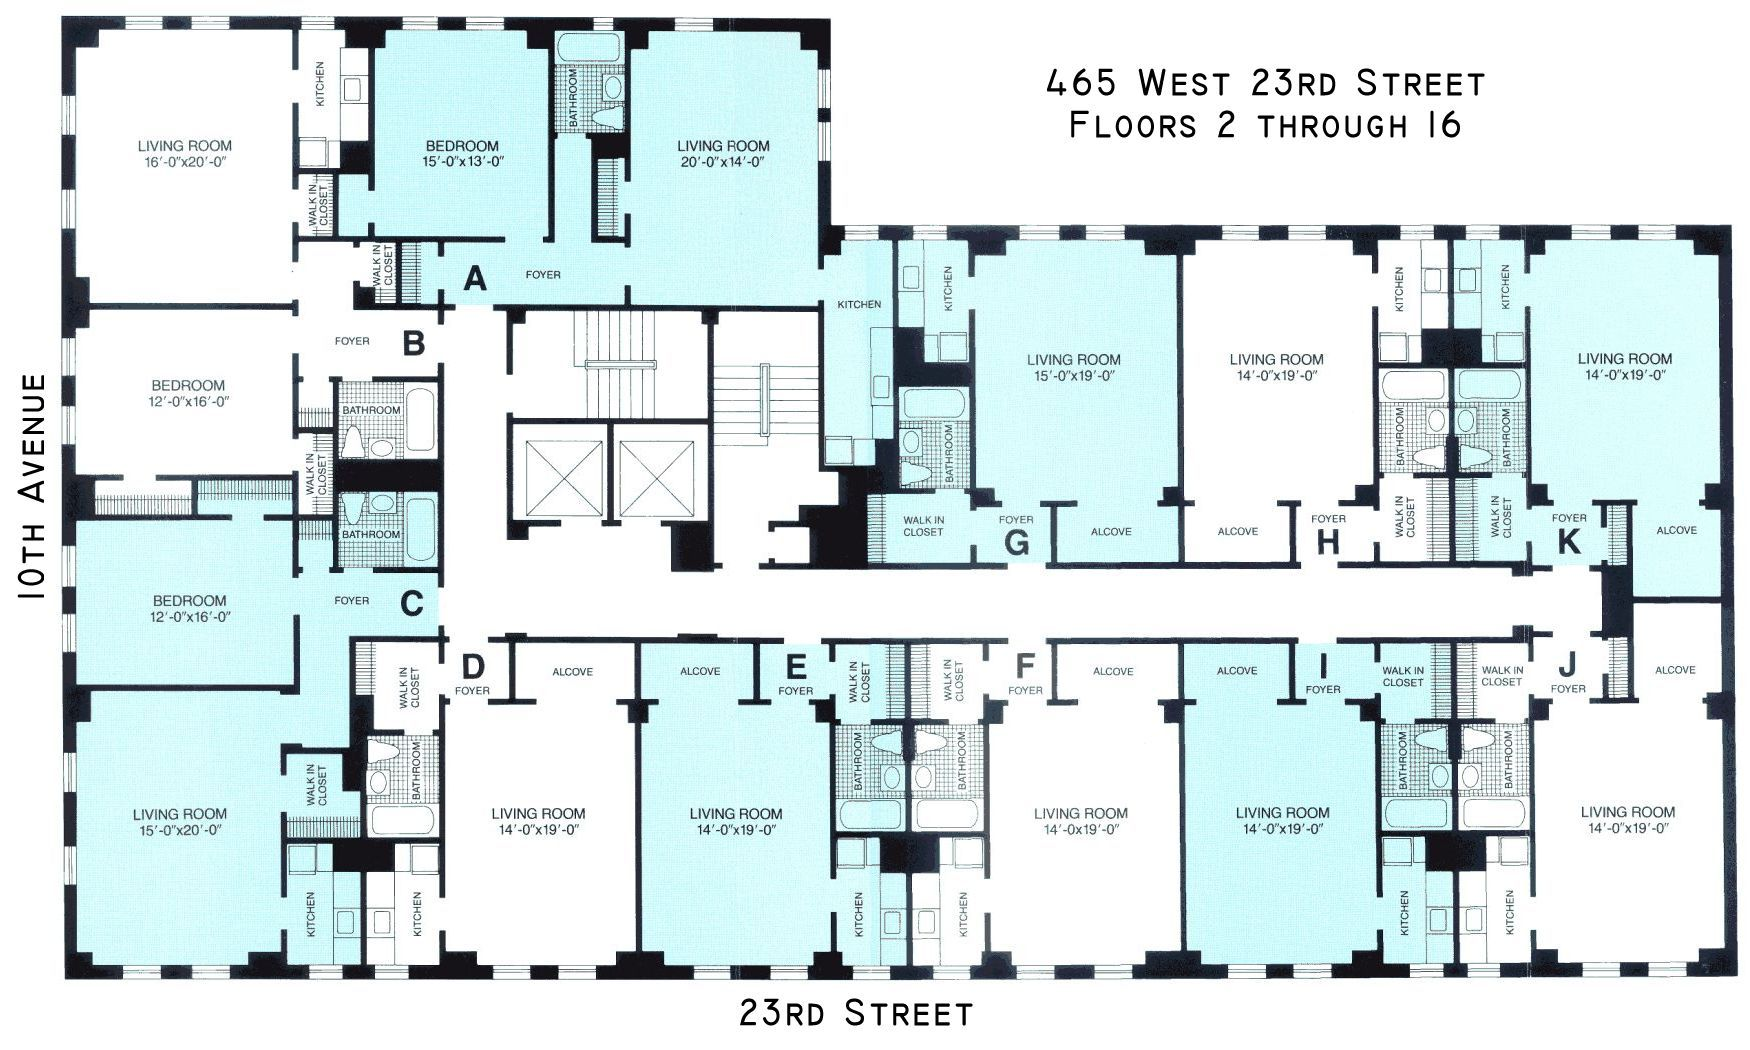 london terrace towers floorplans new york usa